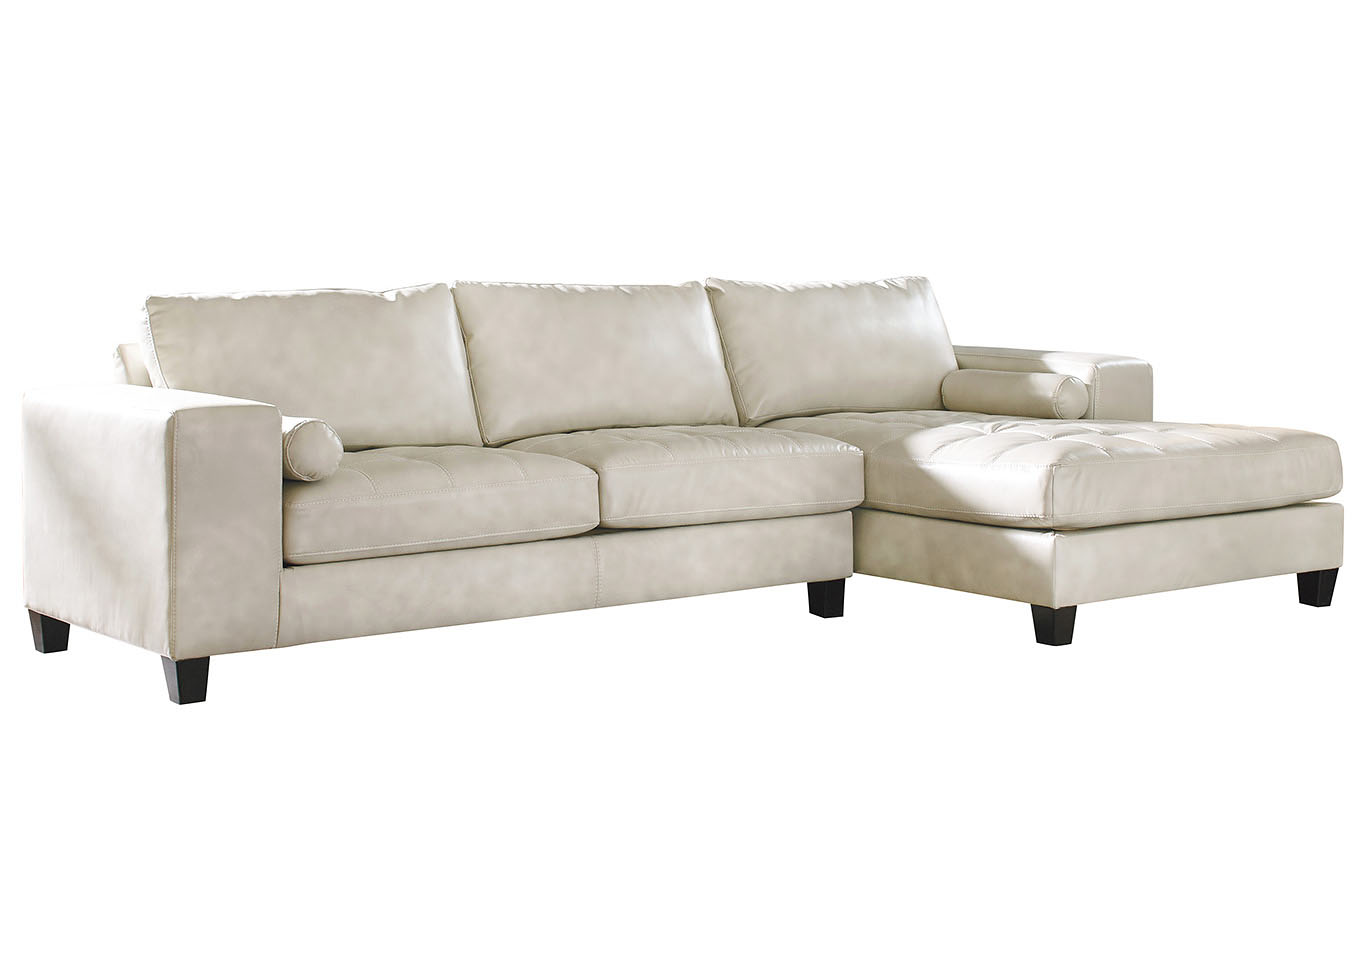 Beau Nokomis Arctic Left Facing Sofa Corner Chaise Sectional,Signature Design By  Ashley